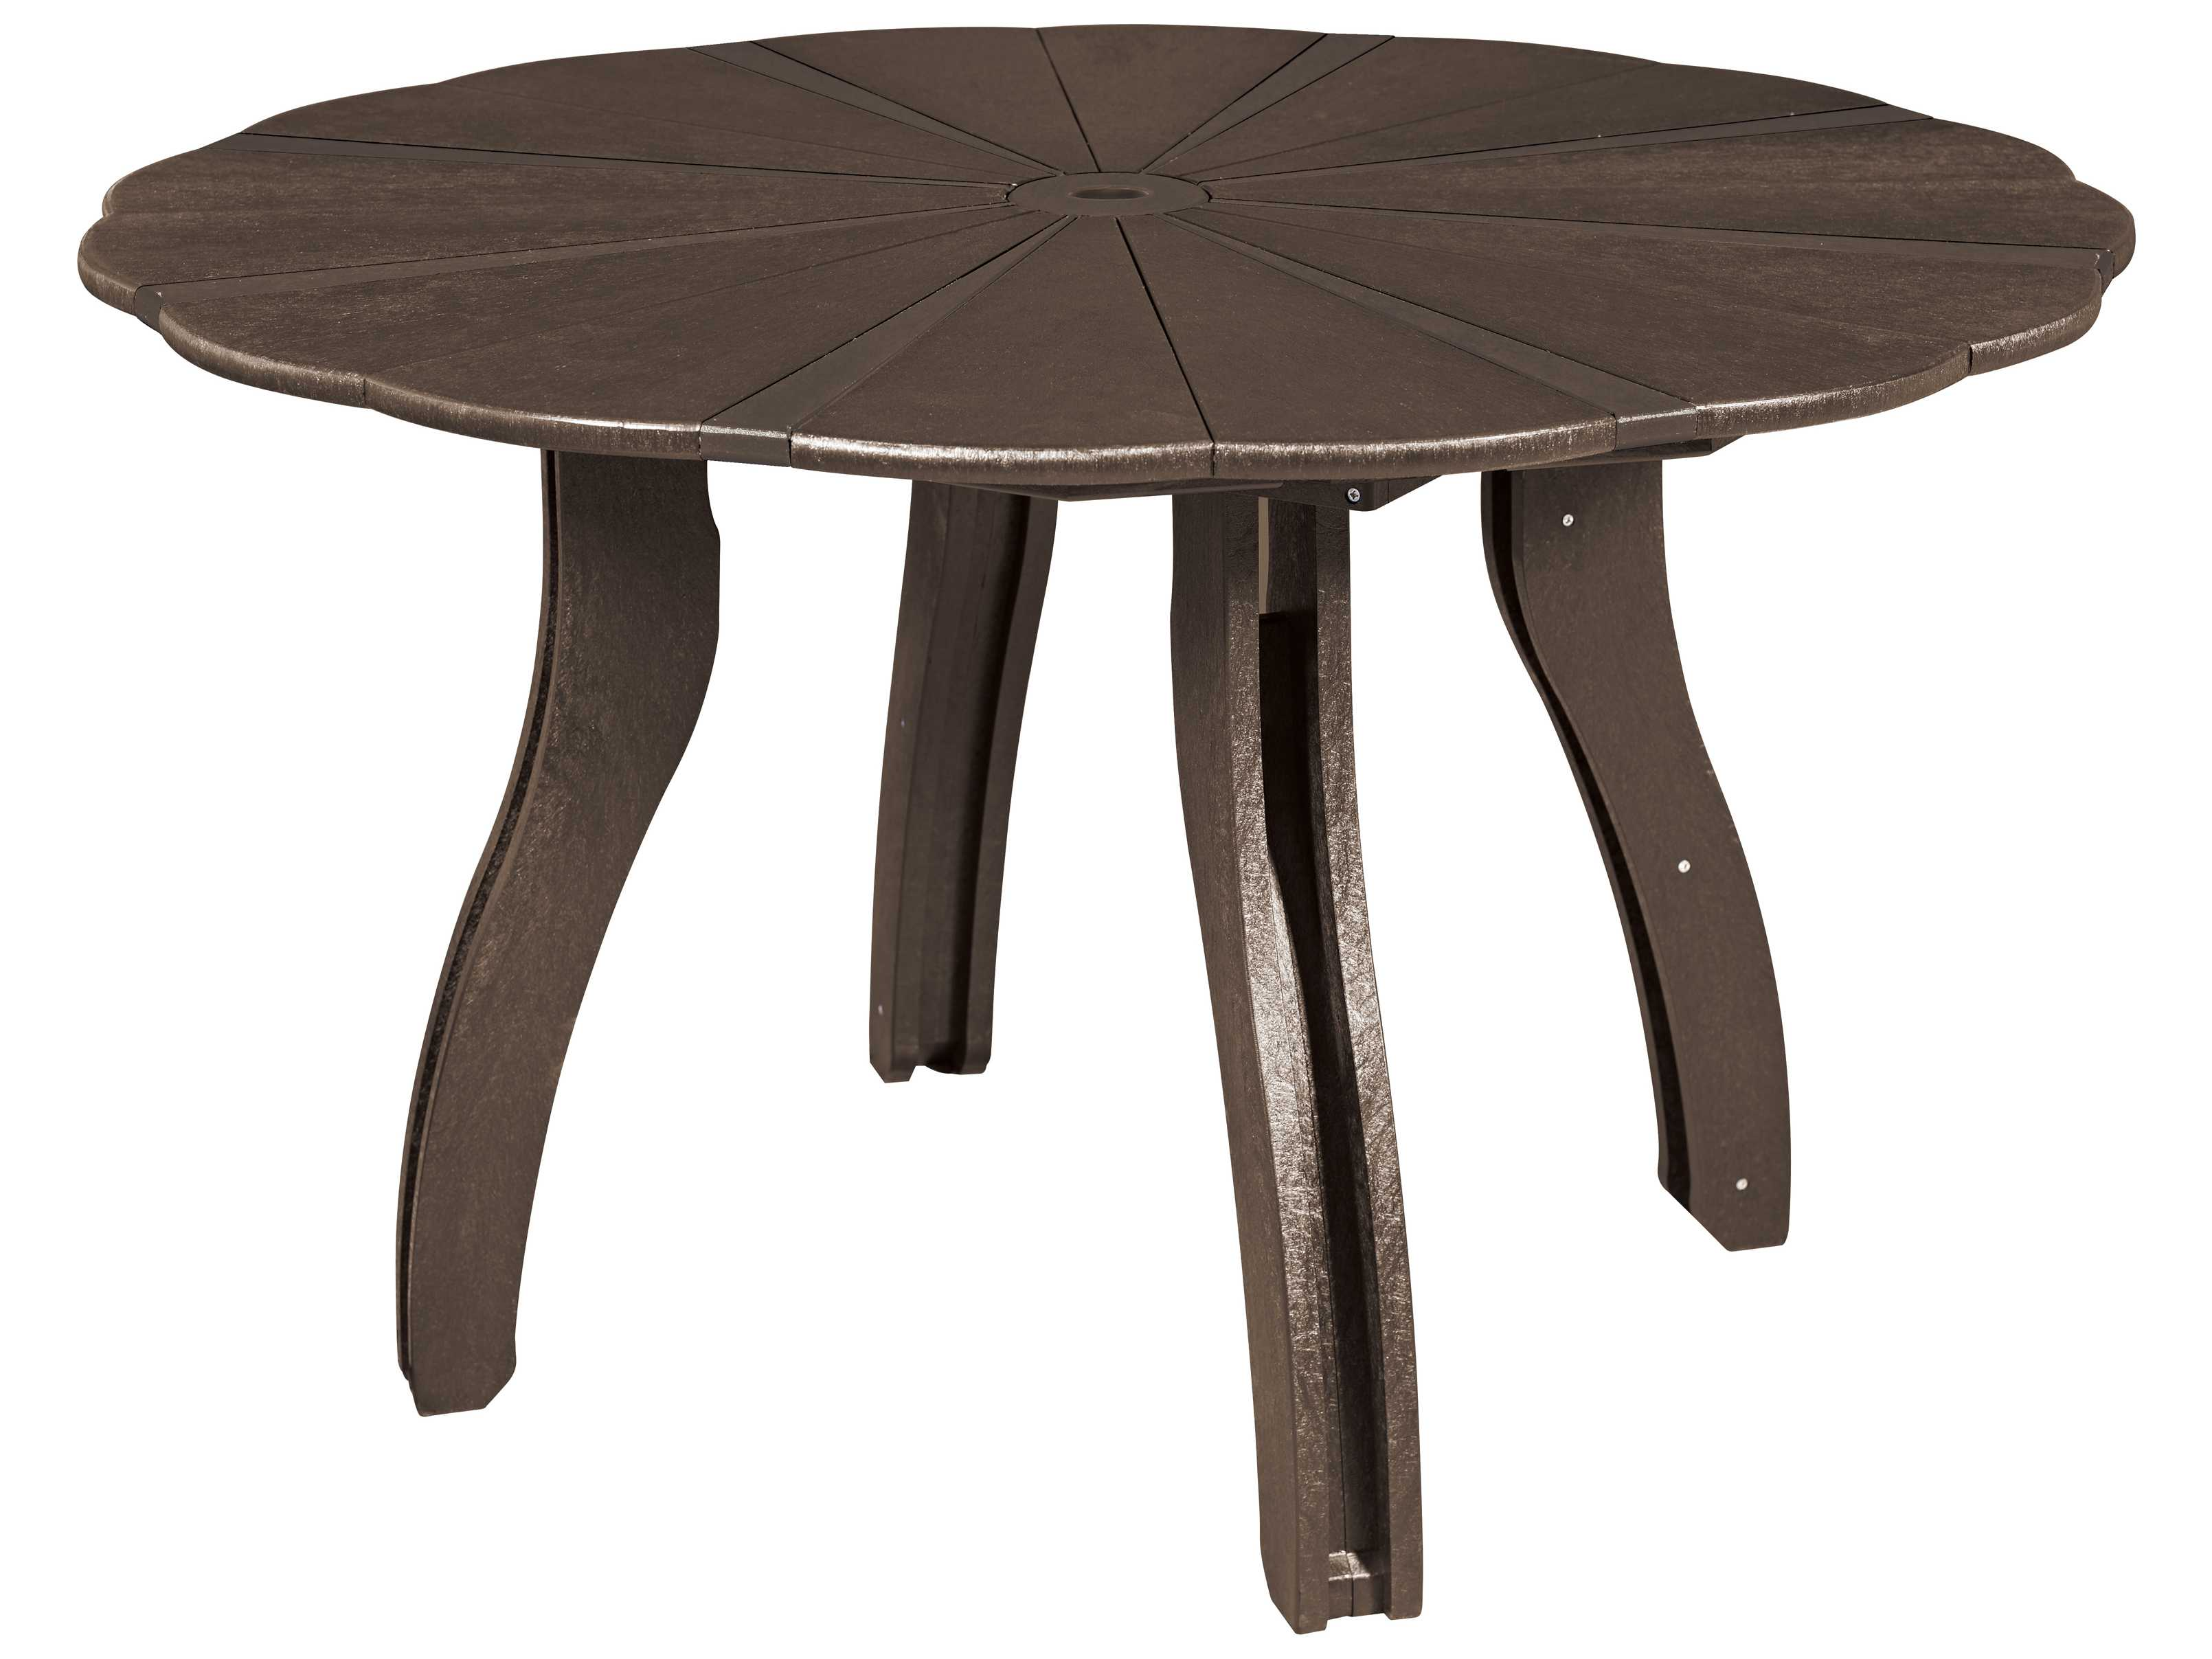 Round Dining Table 52 Inch: C.R. Plastic Generation 52 Scalloped Round Dining Table